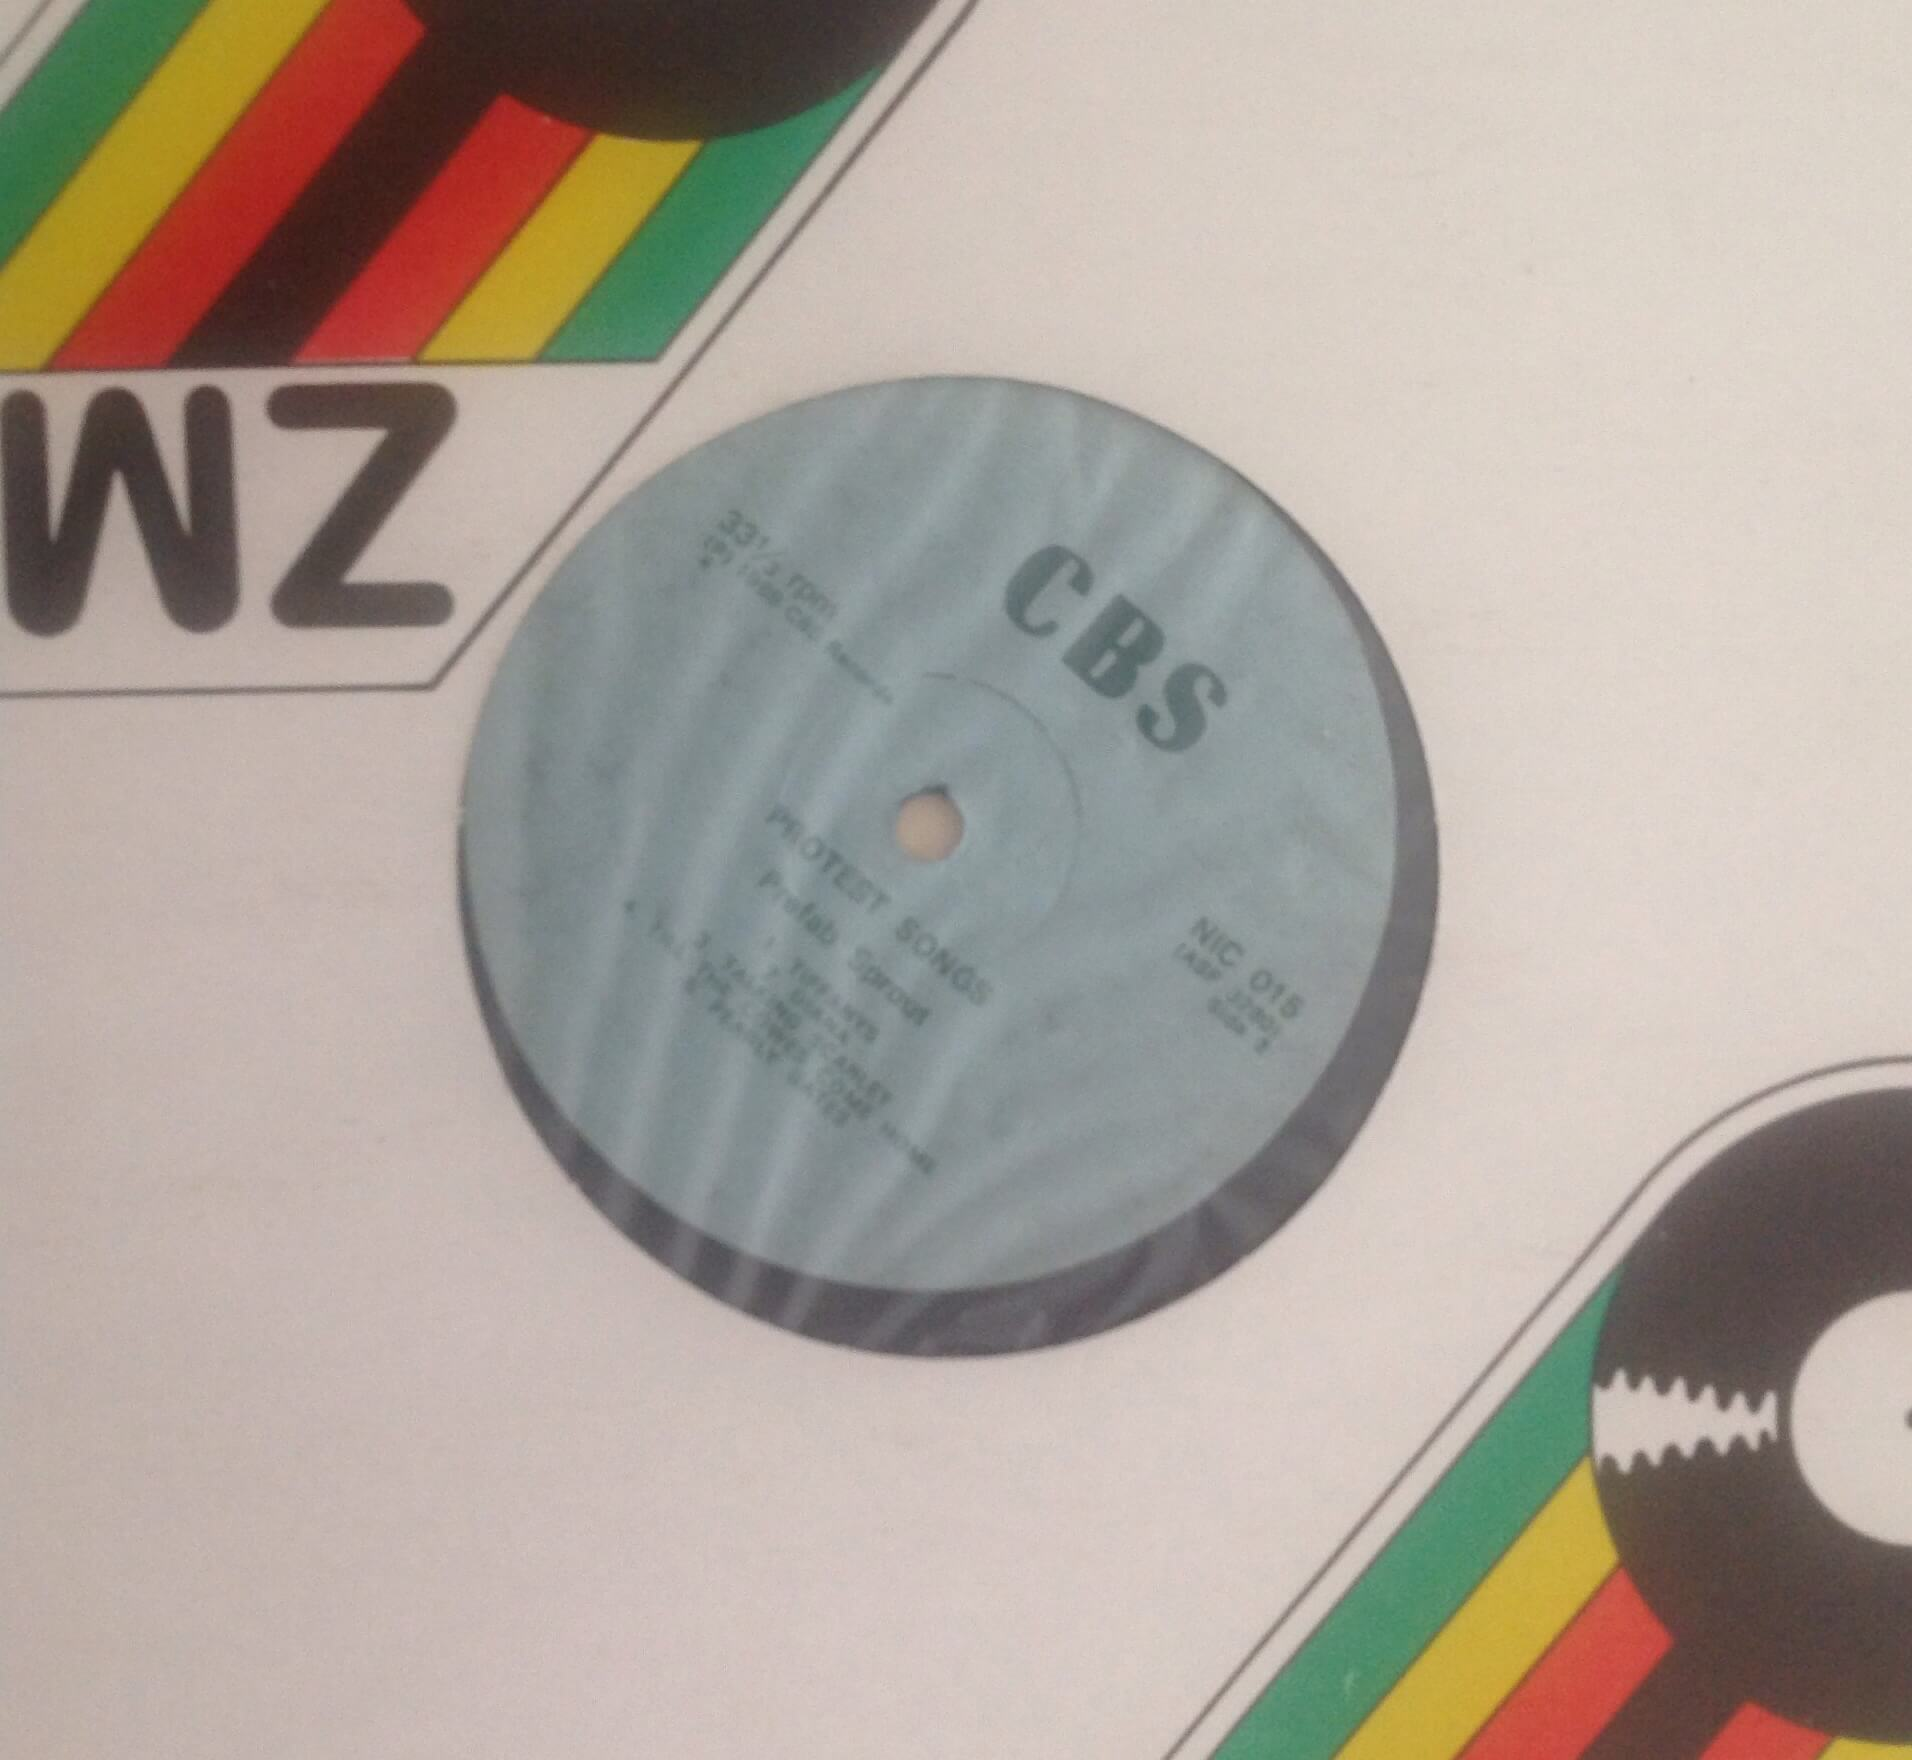 Zimbabwe Test Pressing